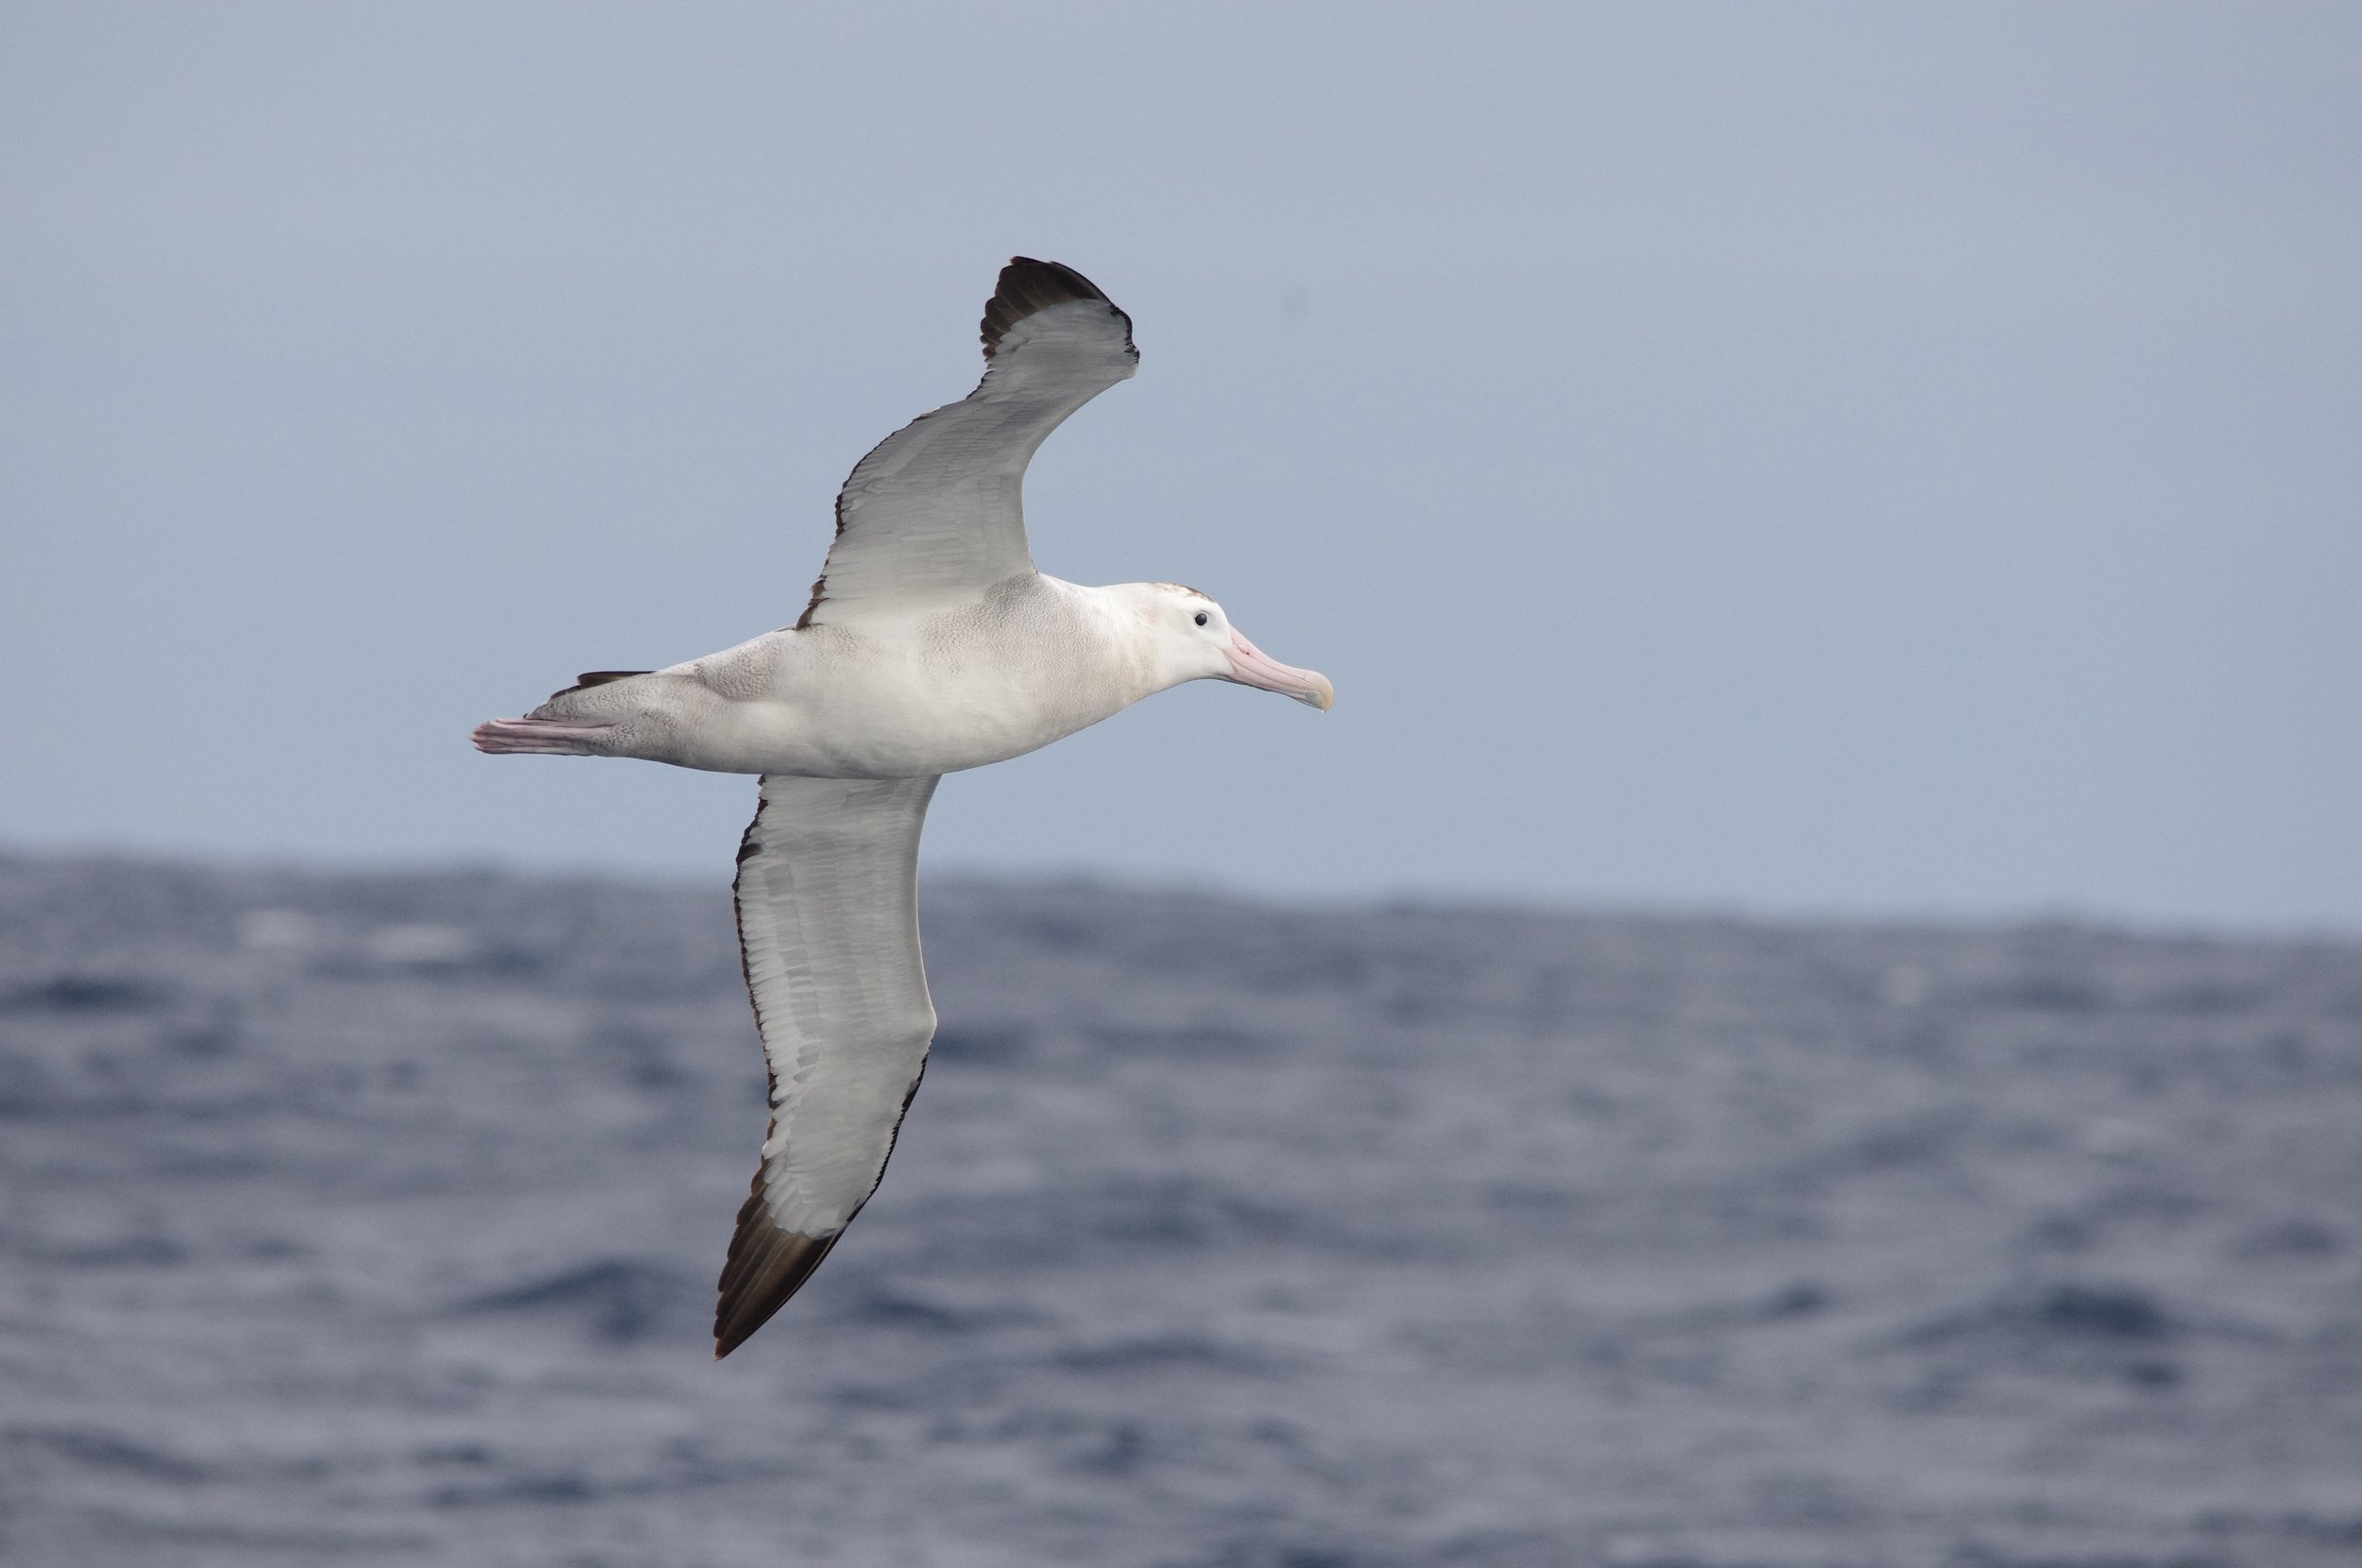 New Zealand wandering albatrosses breed across the Tasman, but their huge wingspan enables efficient flight and their wide-ranging movements make them a common sighting on Victorian pelagics.  Image: Cathy Cavallo